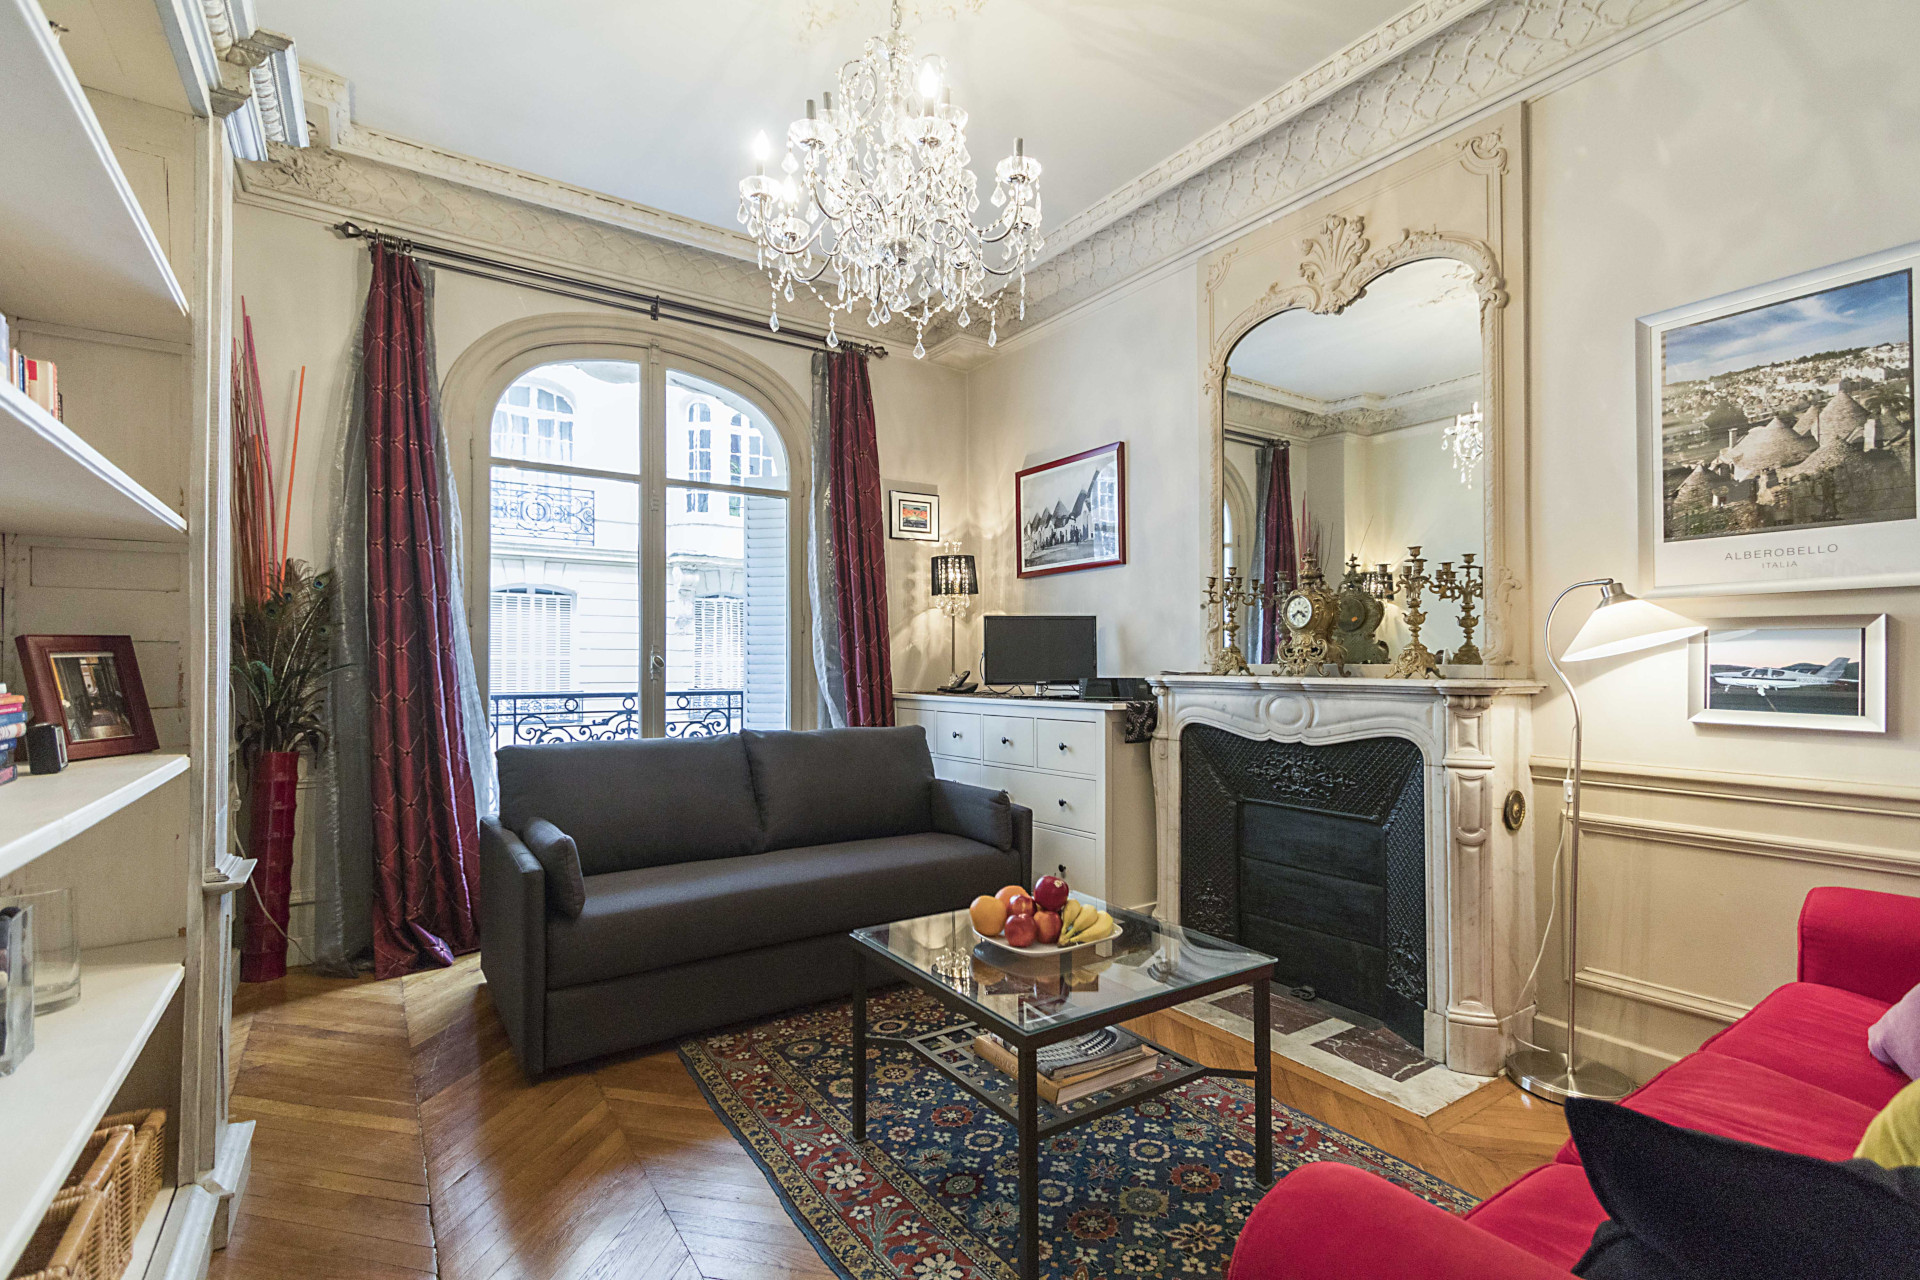 The spacious living area has plenty of room to relax in the Roannaise vacation rental by Paris Perfect